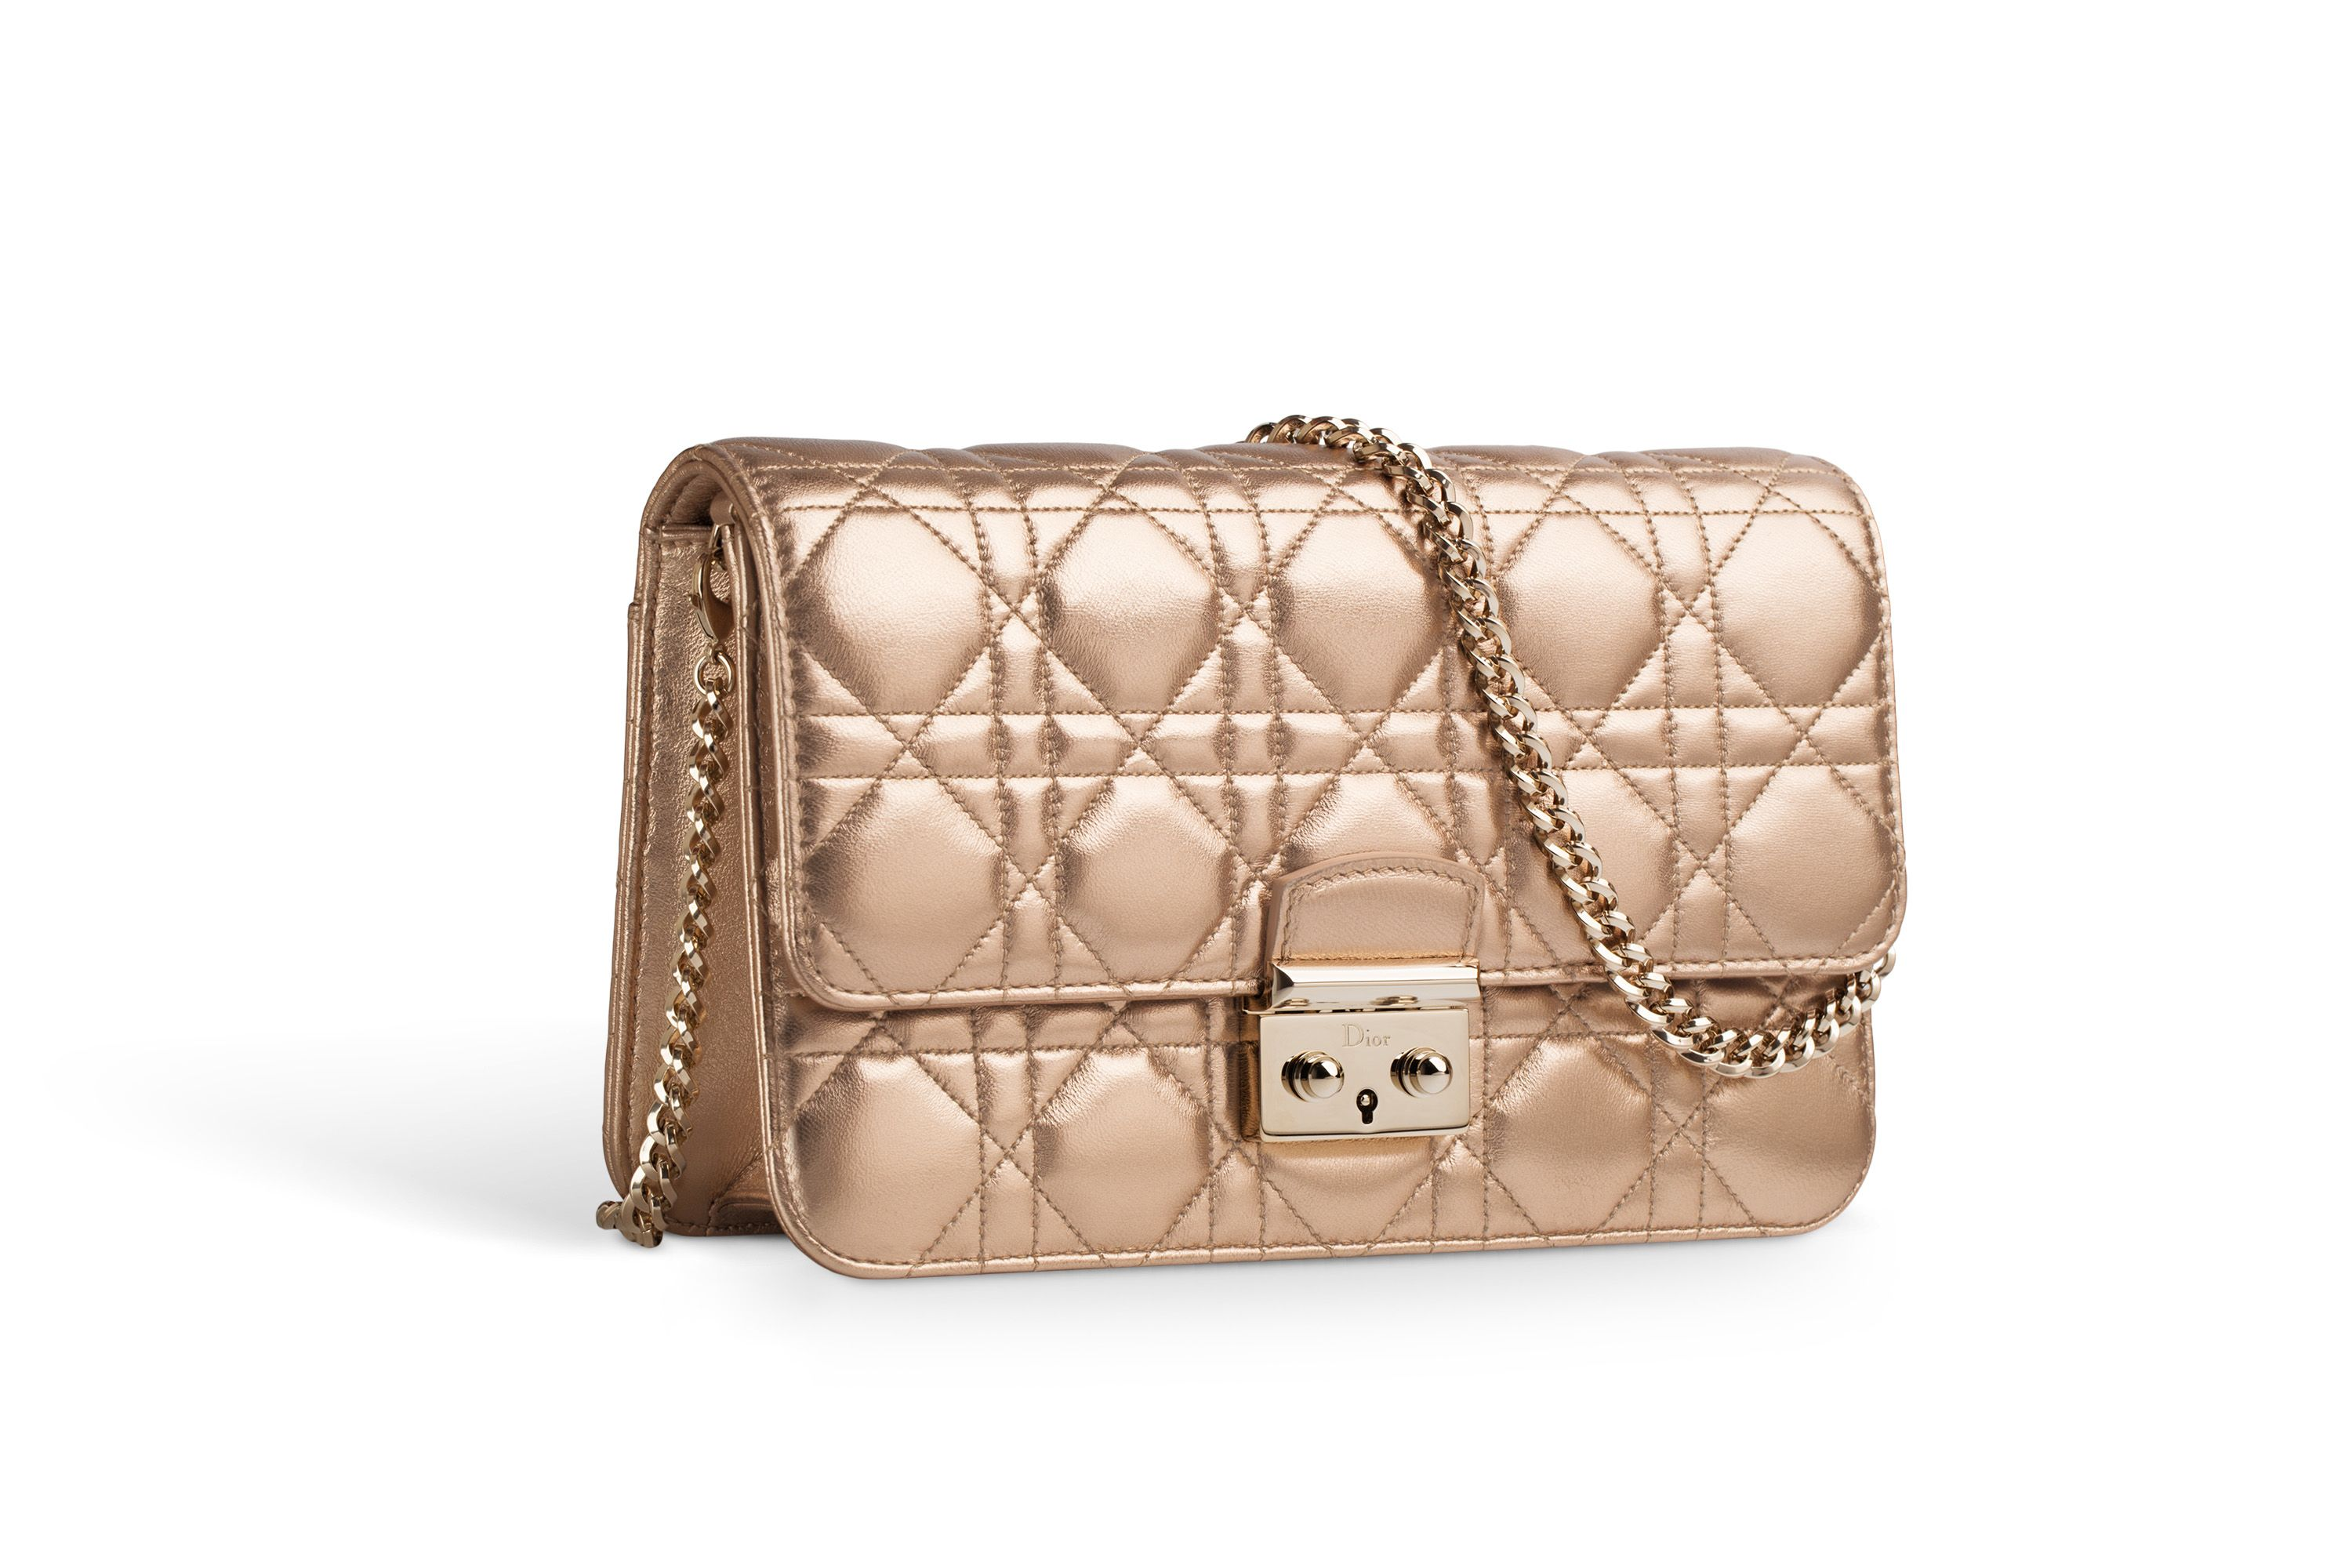 a0e0424299 Christian Dior Clutches Lambskin Chain Elegant Style Clutches 3 ...